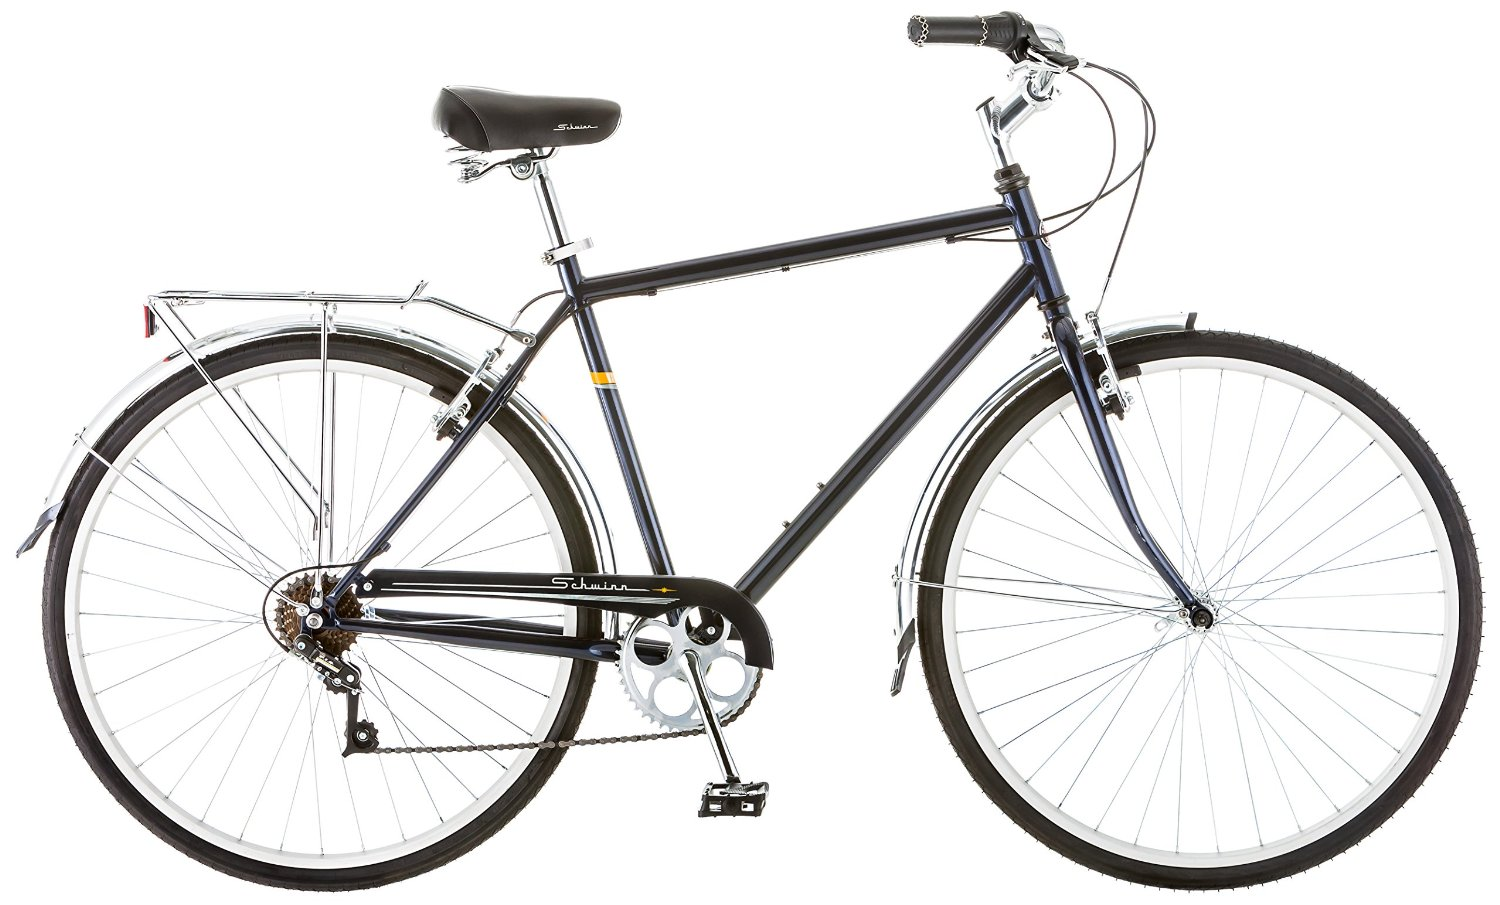 Schwinn Men's Volare 1200 Bike 700c Grey